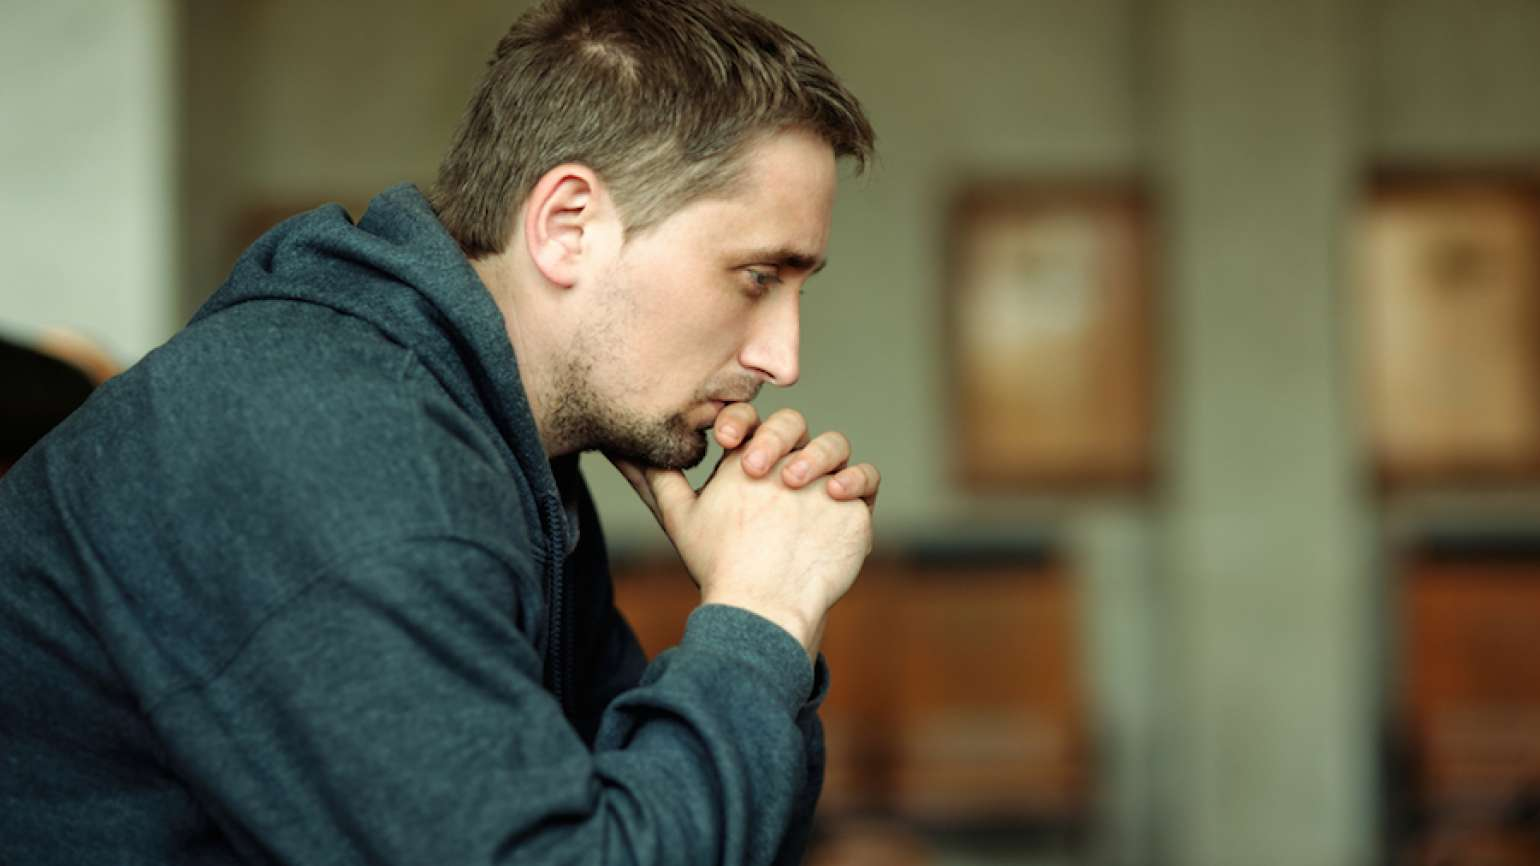 Man praying. Shutterstock.